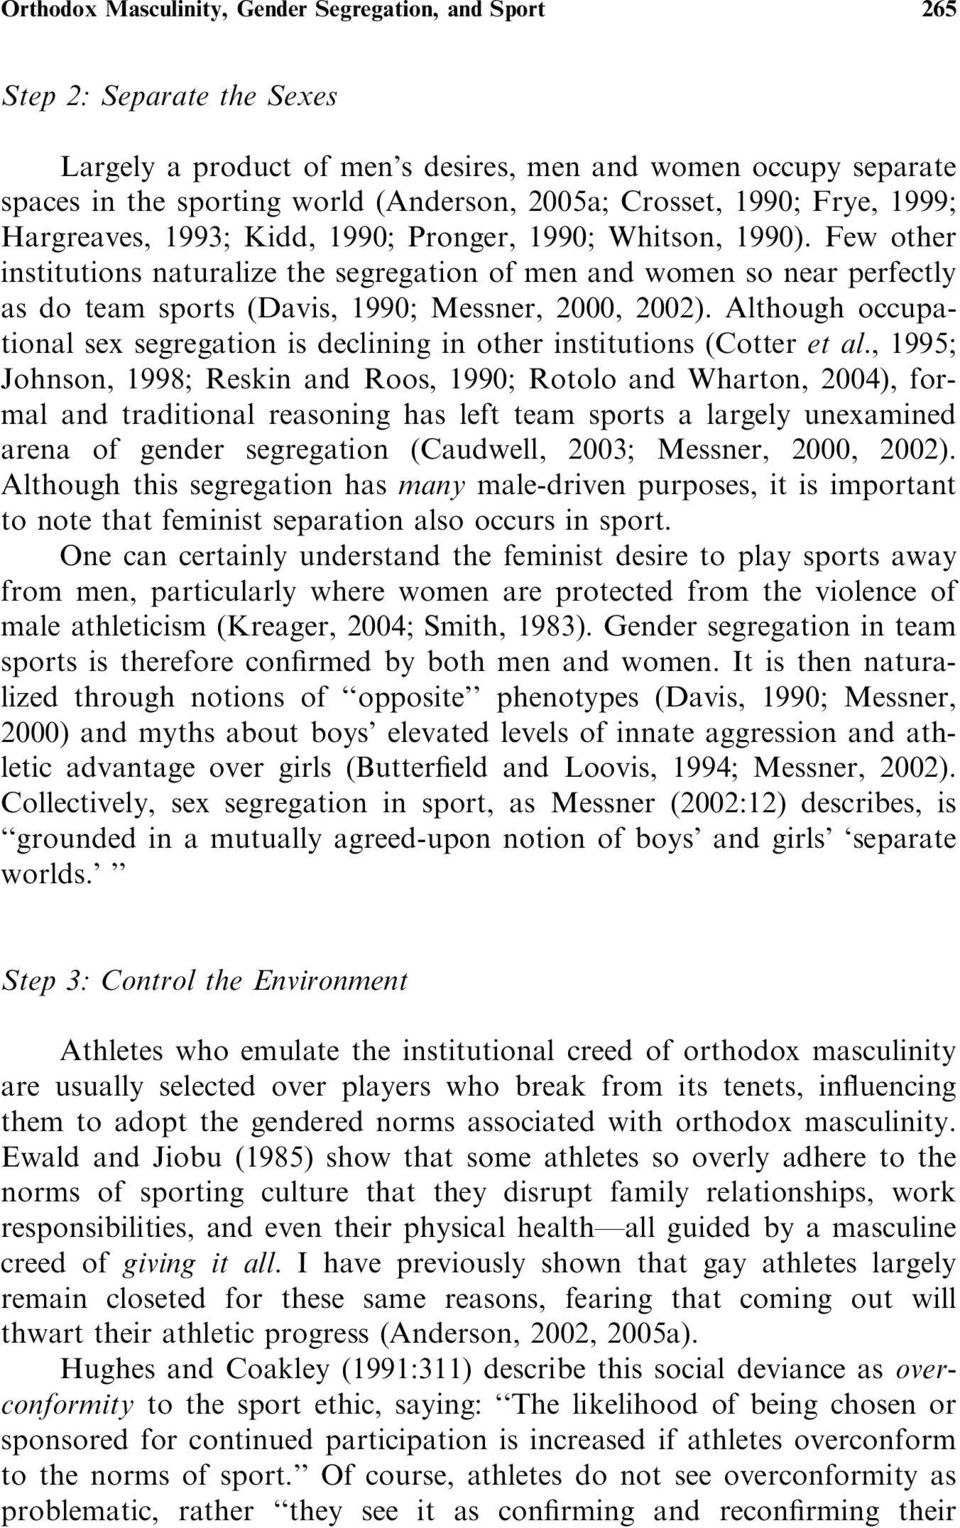 Few other institutions naturalize the segregation of men and women so near perfectly as do team sports (Davis, 1990; Messner, 2000, 2002).